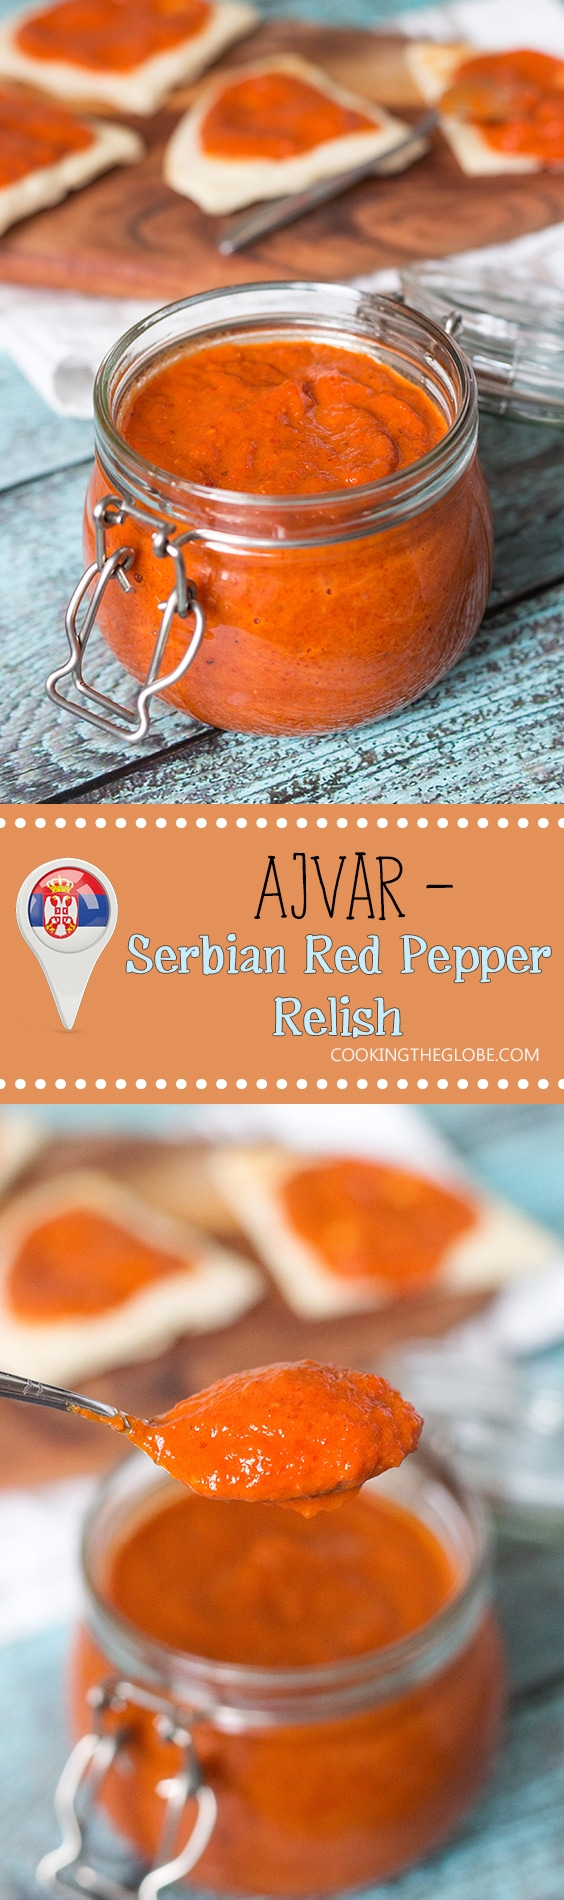 This Serbian eggplant and red pepper relish, called Ajvar, goes great with meat, as a sauce on pasta or just slathered on bread!